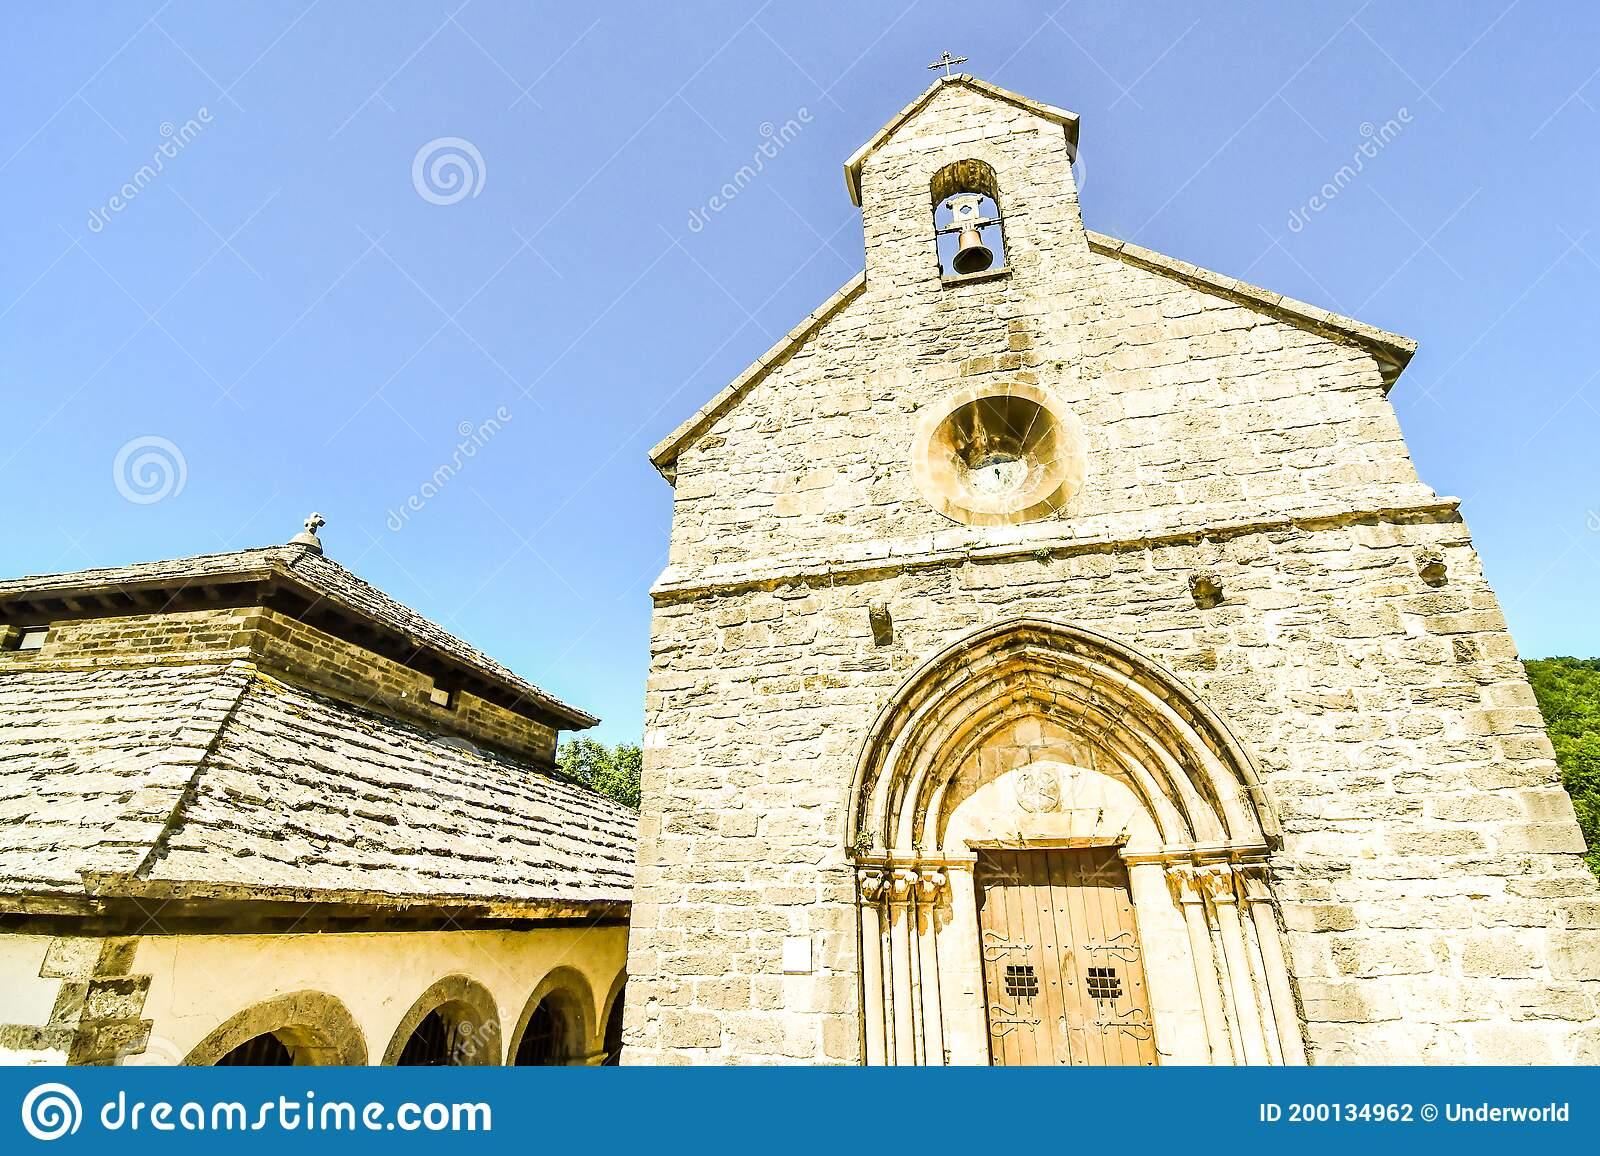 Tower Of The Church Photo As A Background In Navarra Aragon Zaragoza Spain Europe Roncisvalle Camino De Santiago City Stock Photo Image Of Architecture Zaragoza 200134962